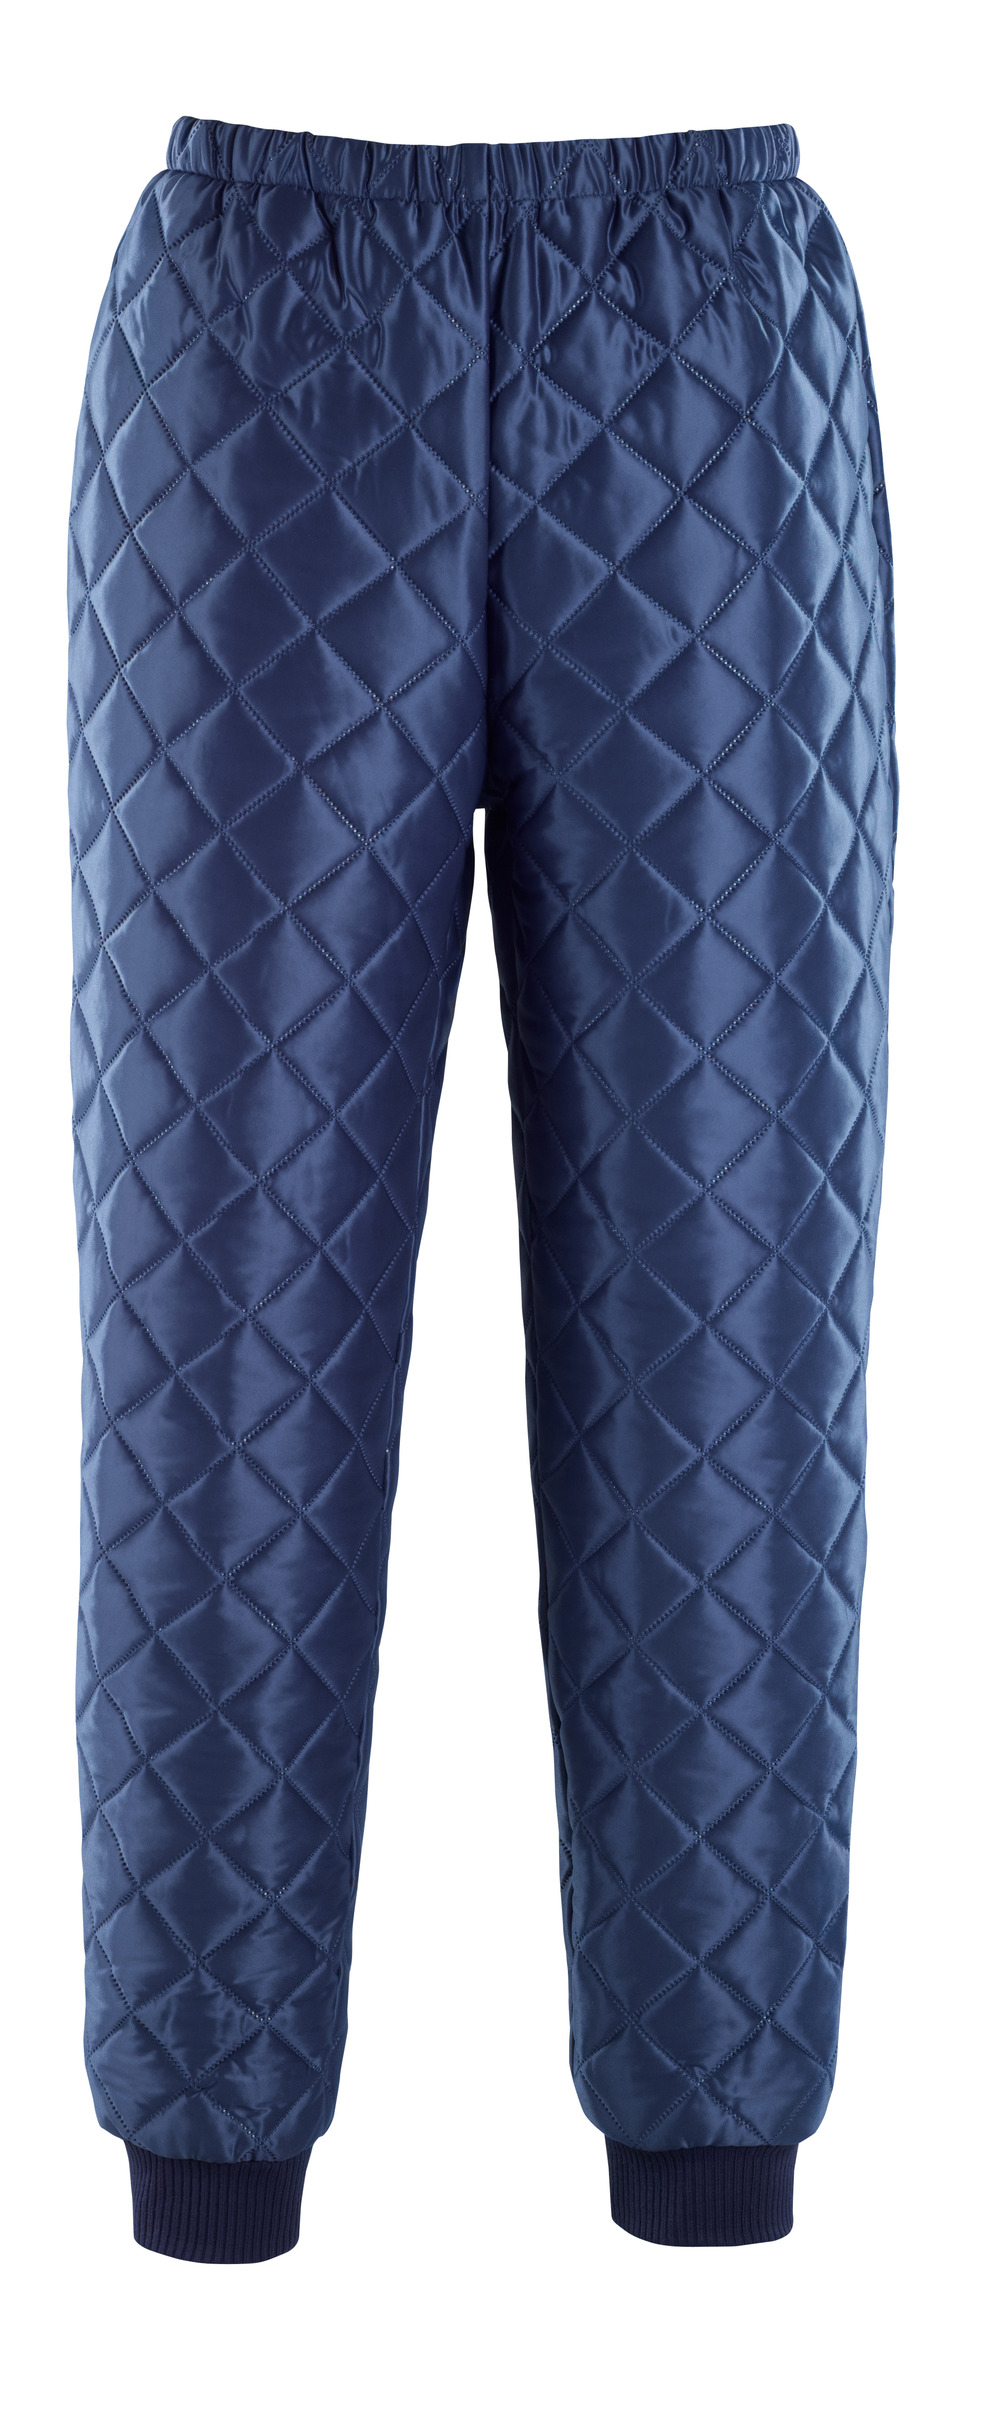 13571-707-01 Thermal Pants - navy